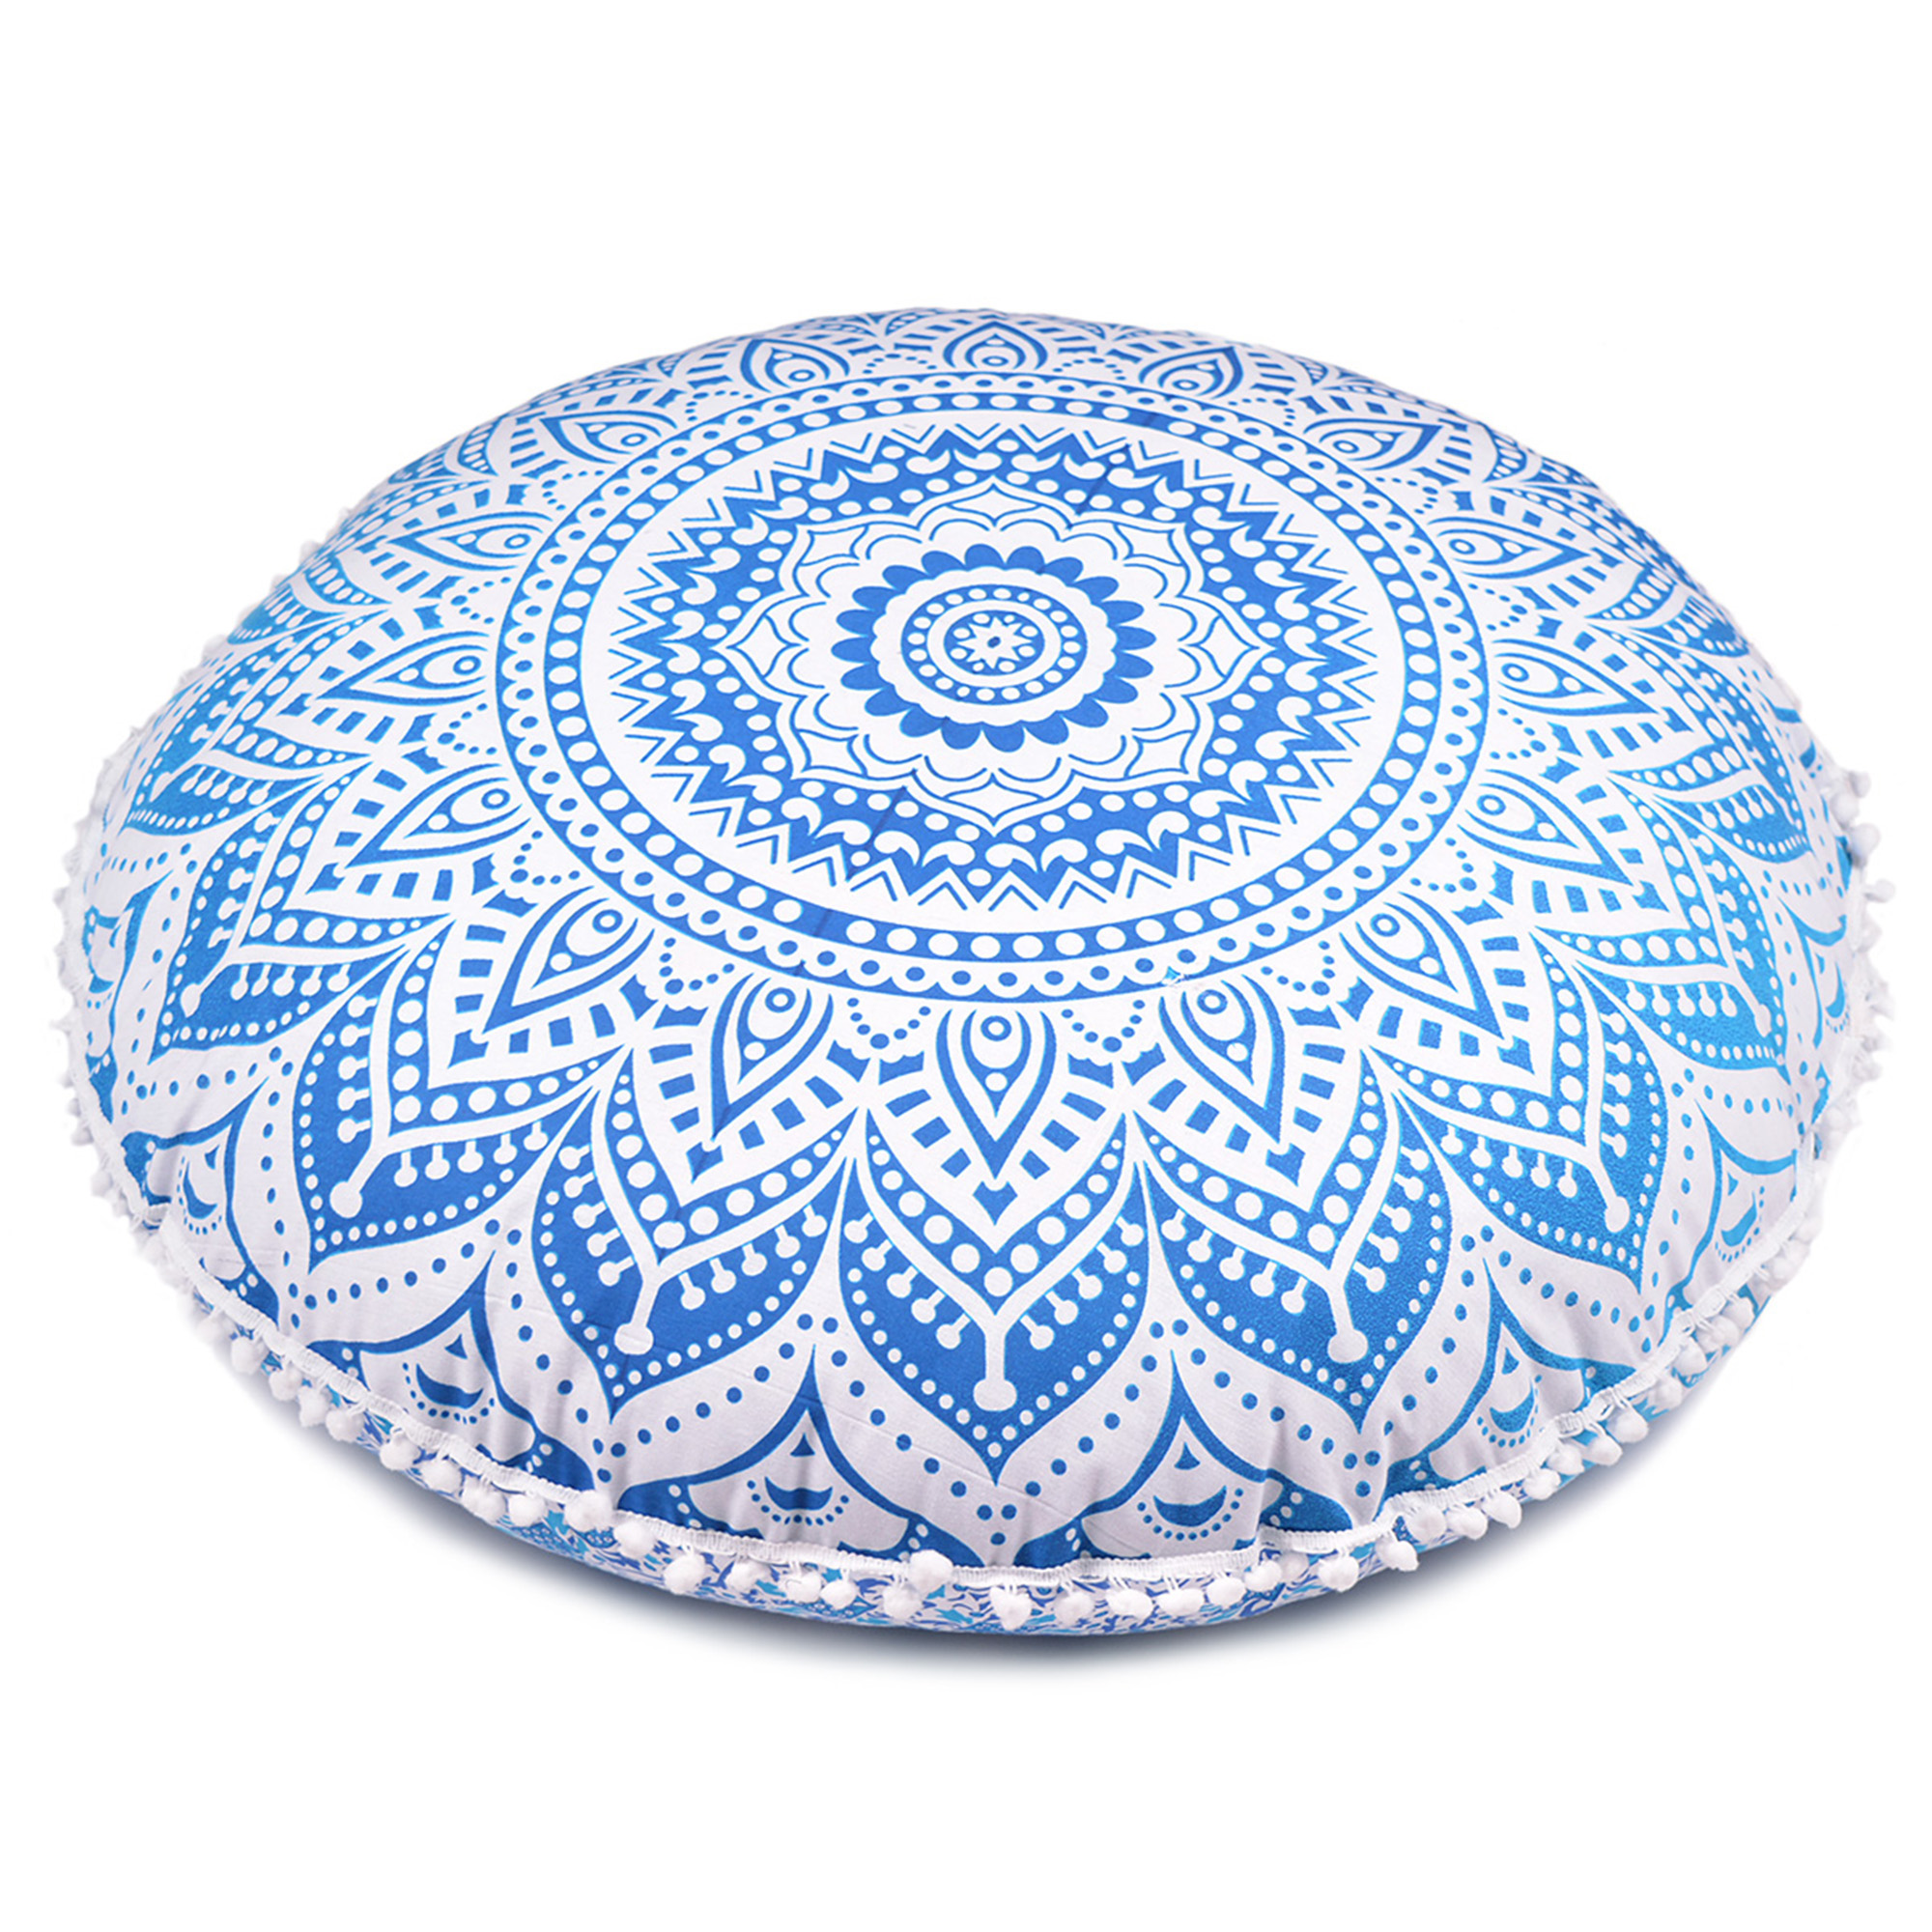 "Blue Round Throw Decorative Floor Cushion Cover Mandala Floor Pillow Cases for Summer Patio and Garden Decor Size 32"" by Goood Times"